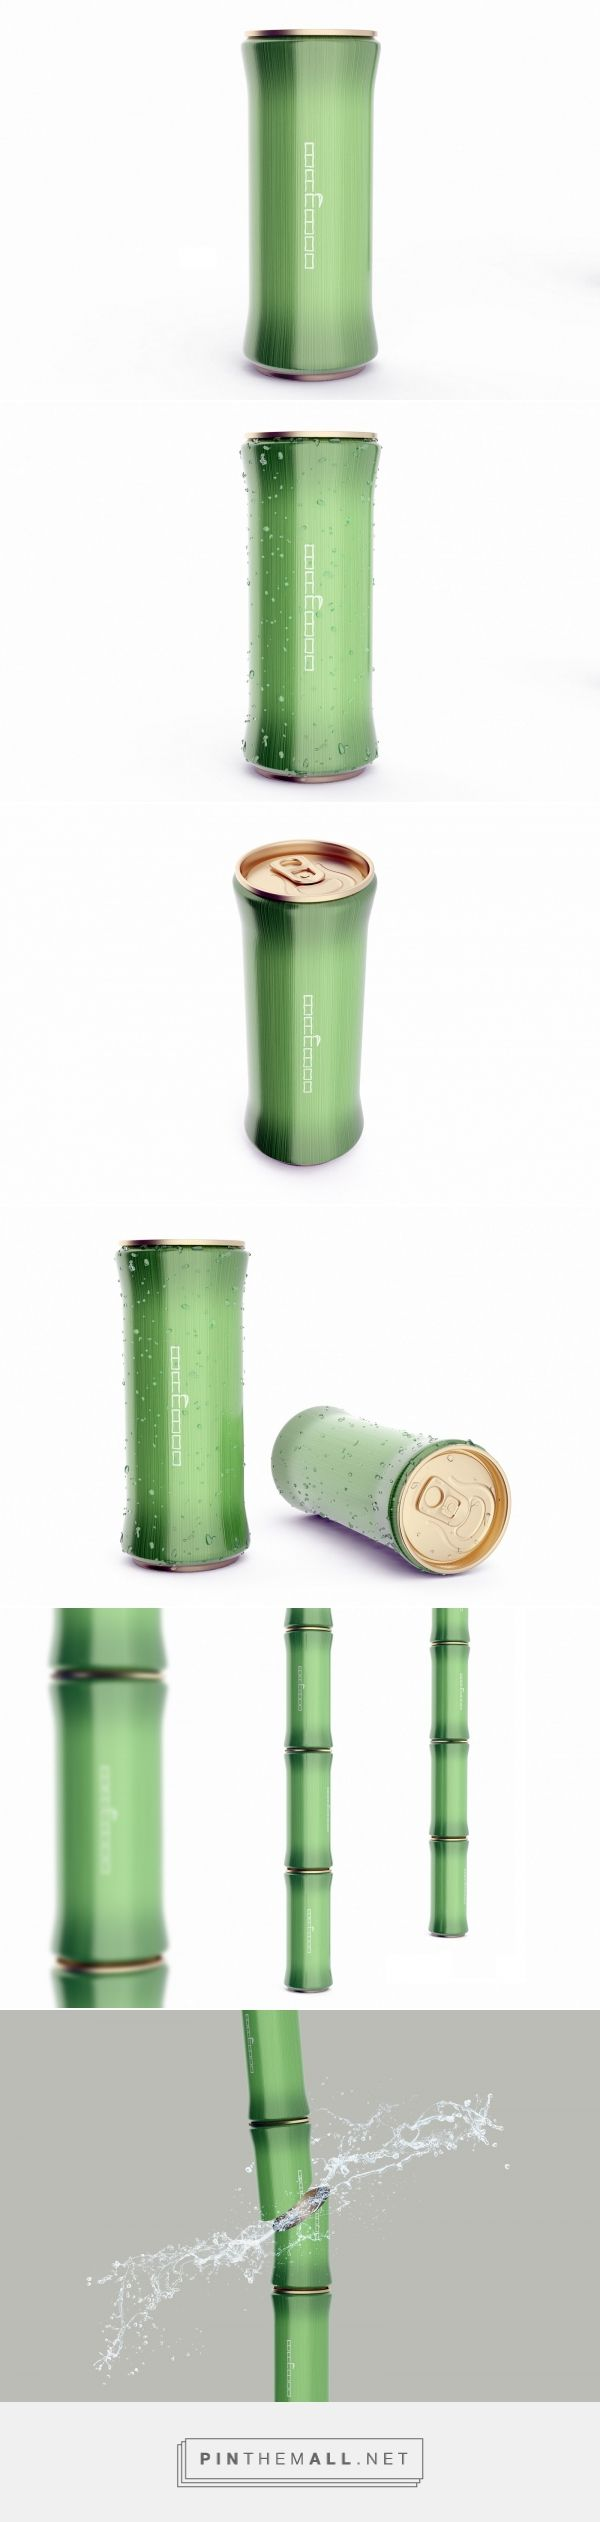 Bamboo Juice packaging design concept by Marcel Sheishenov - http://www.packagingoftheworld.com/2017/07/bamboo-juice-concept.html